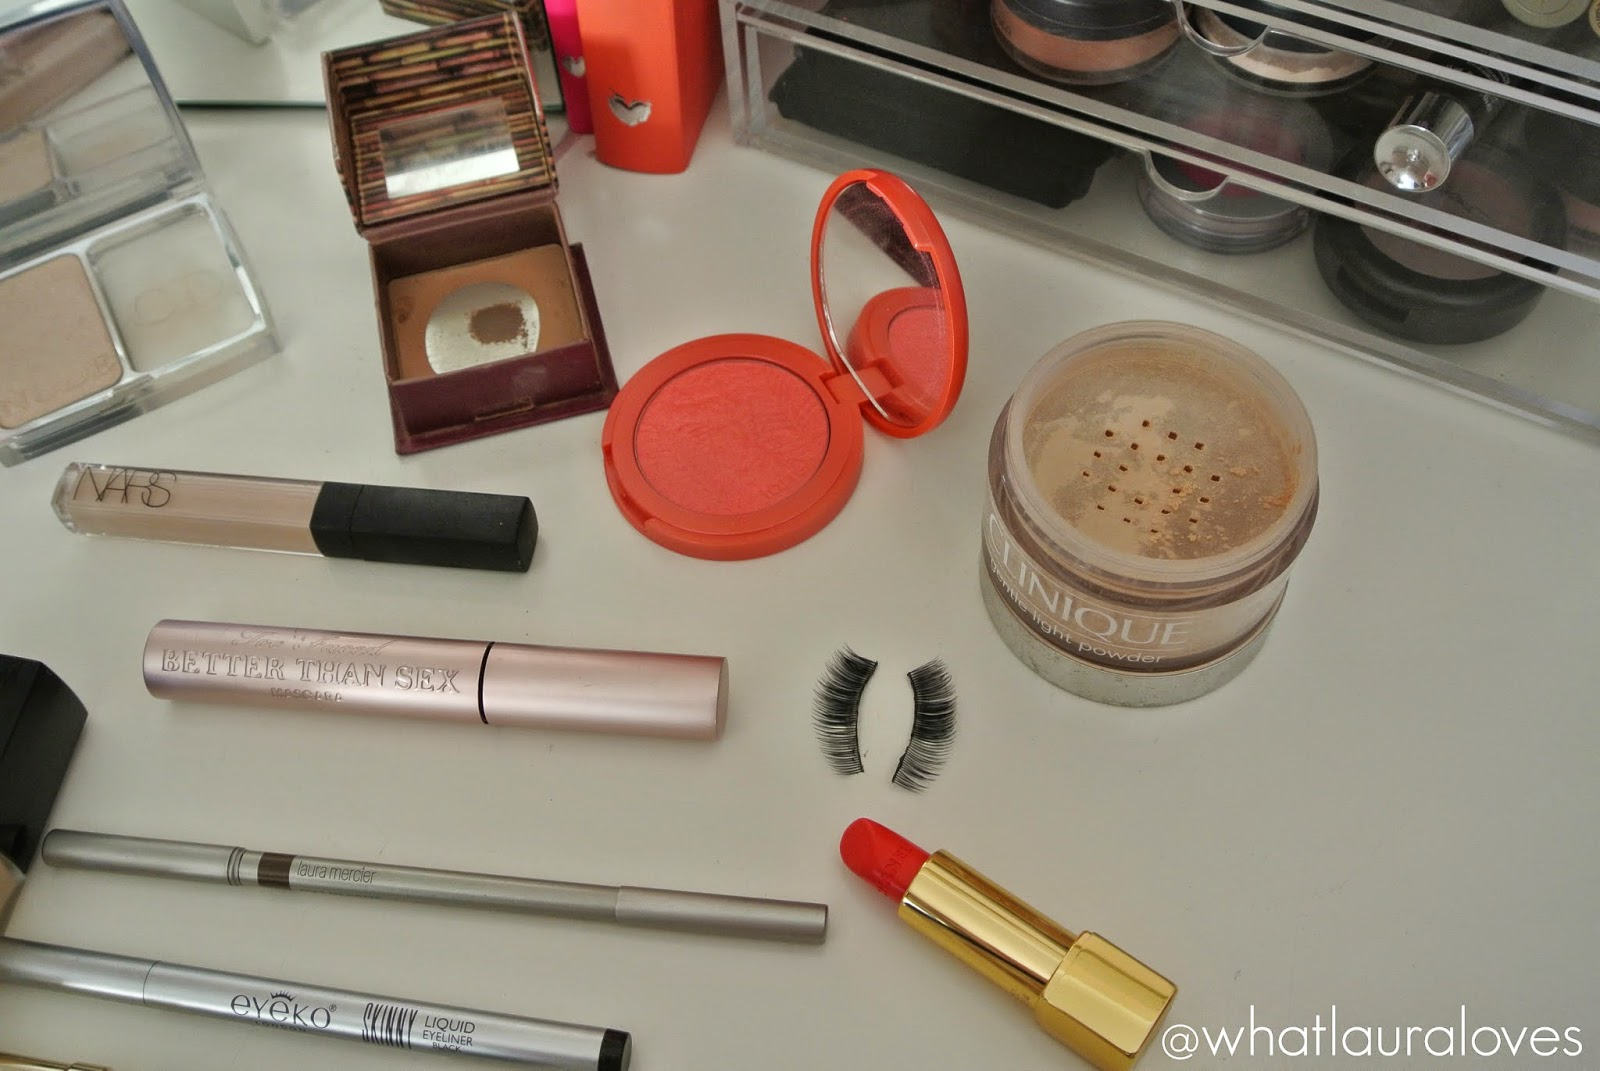 Chanel Coral Make Up Look Date Night Makeup